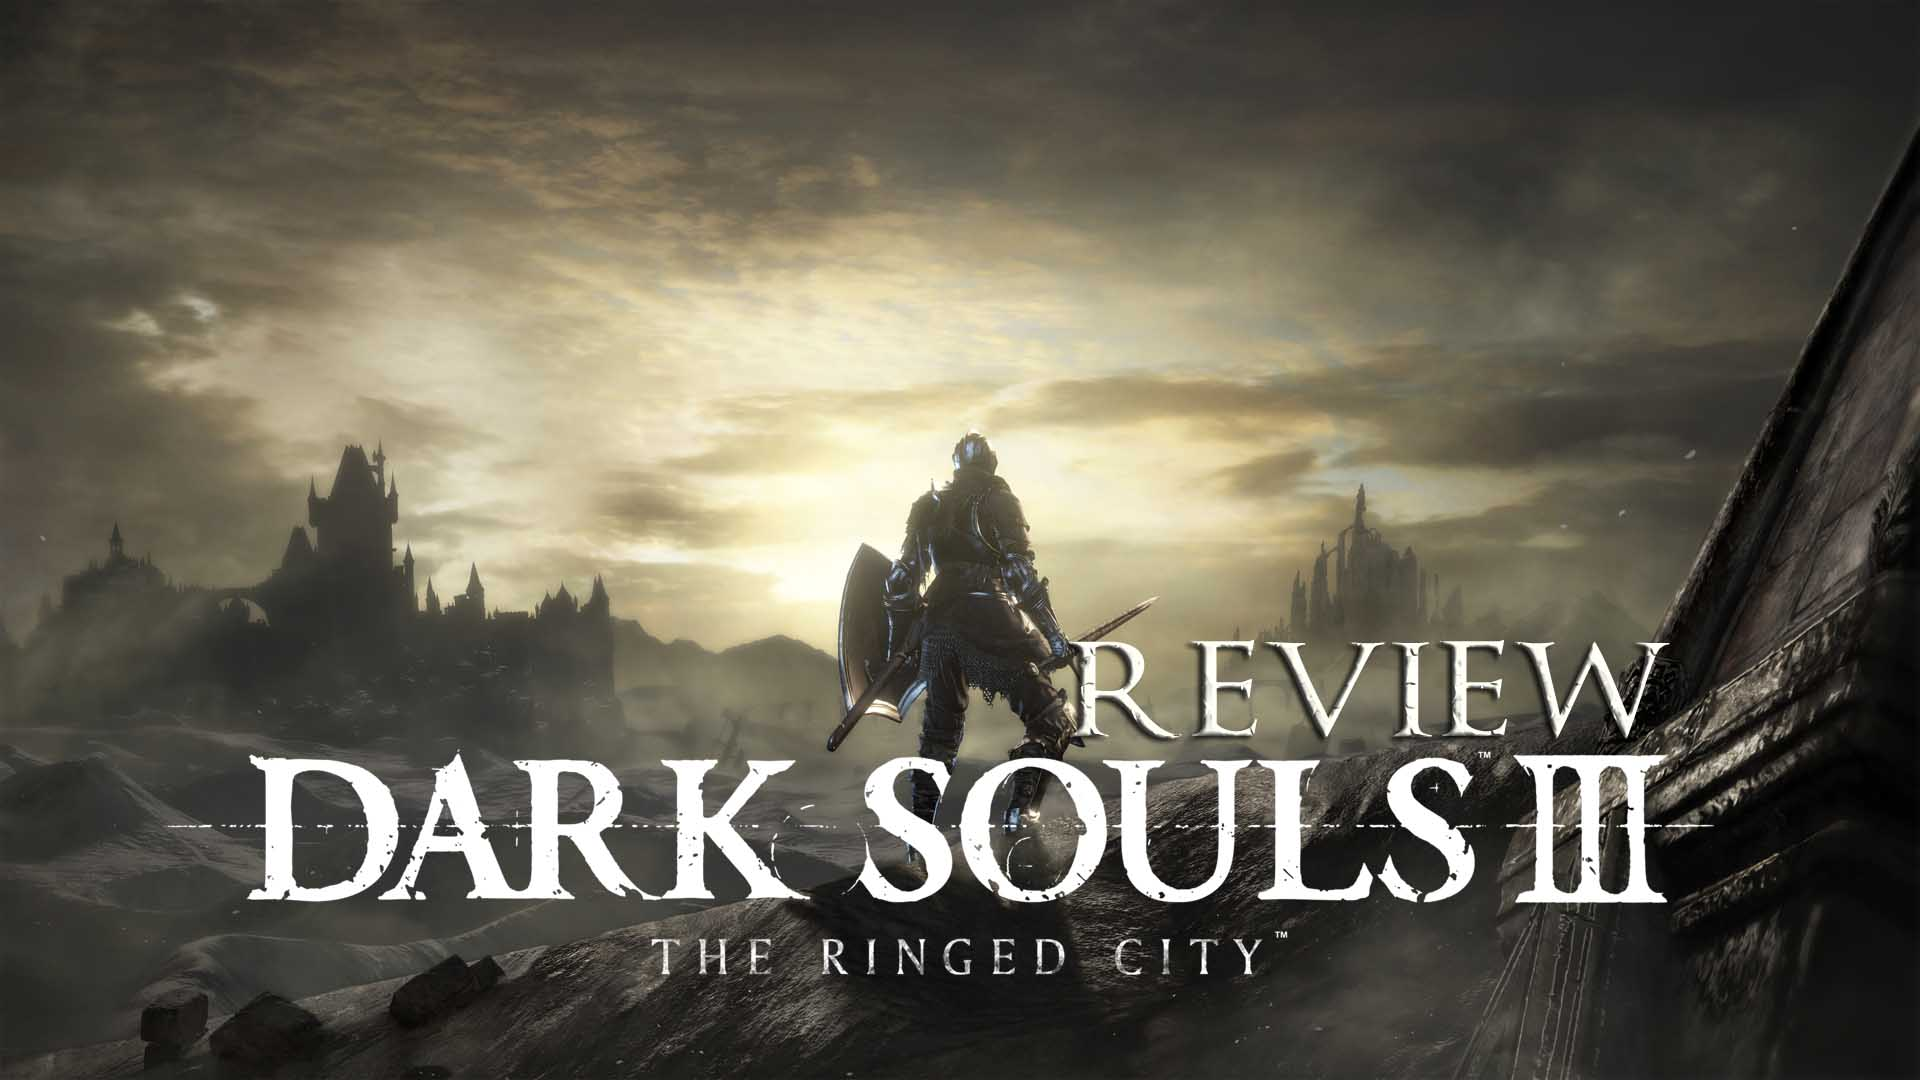 The Ringed City Wallpaper: Dark Souls 3 The Ringed City Review: The End Of An Age